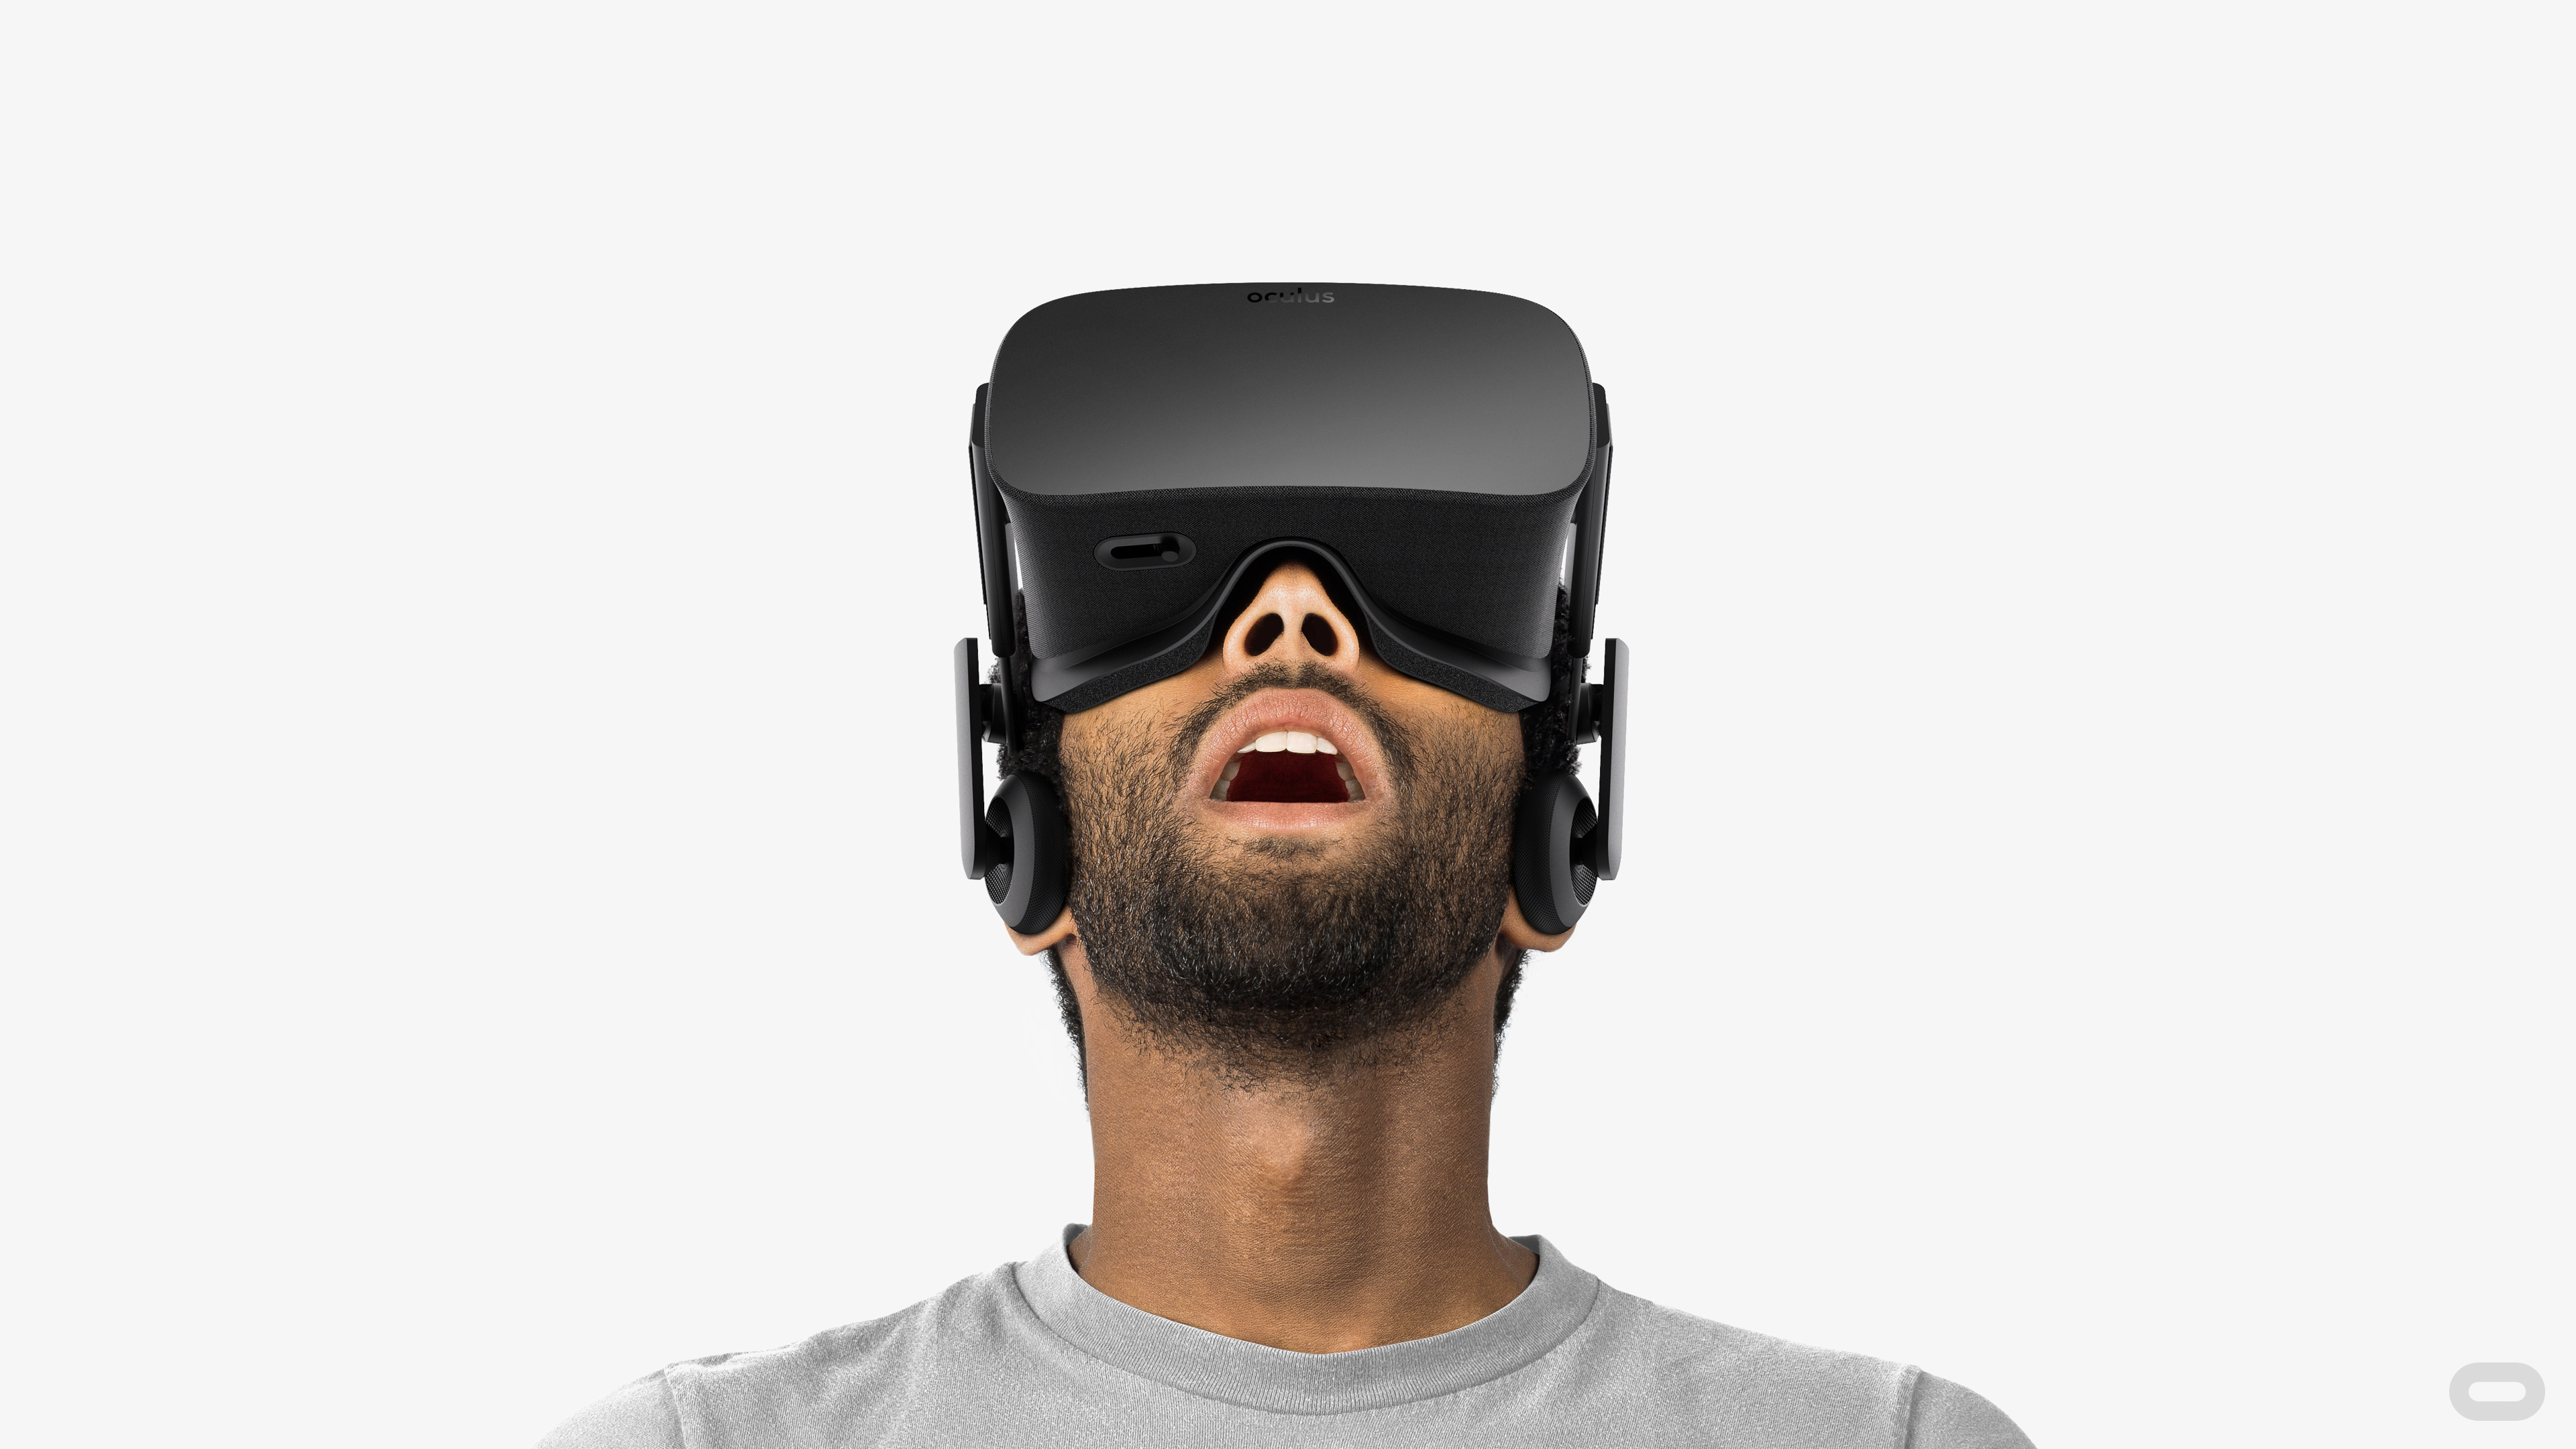 Oculus Rift ballpark invites comparisons to other VR headsets